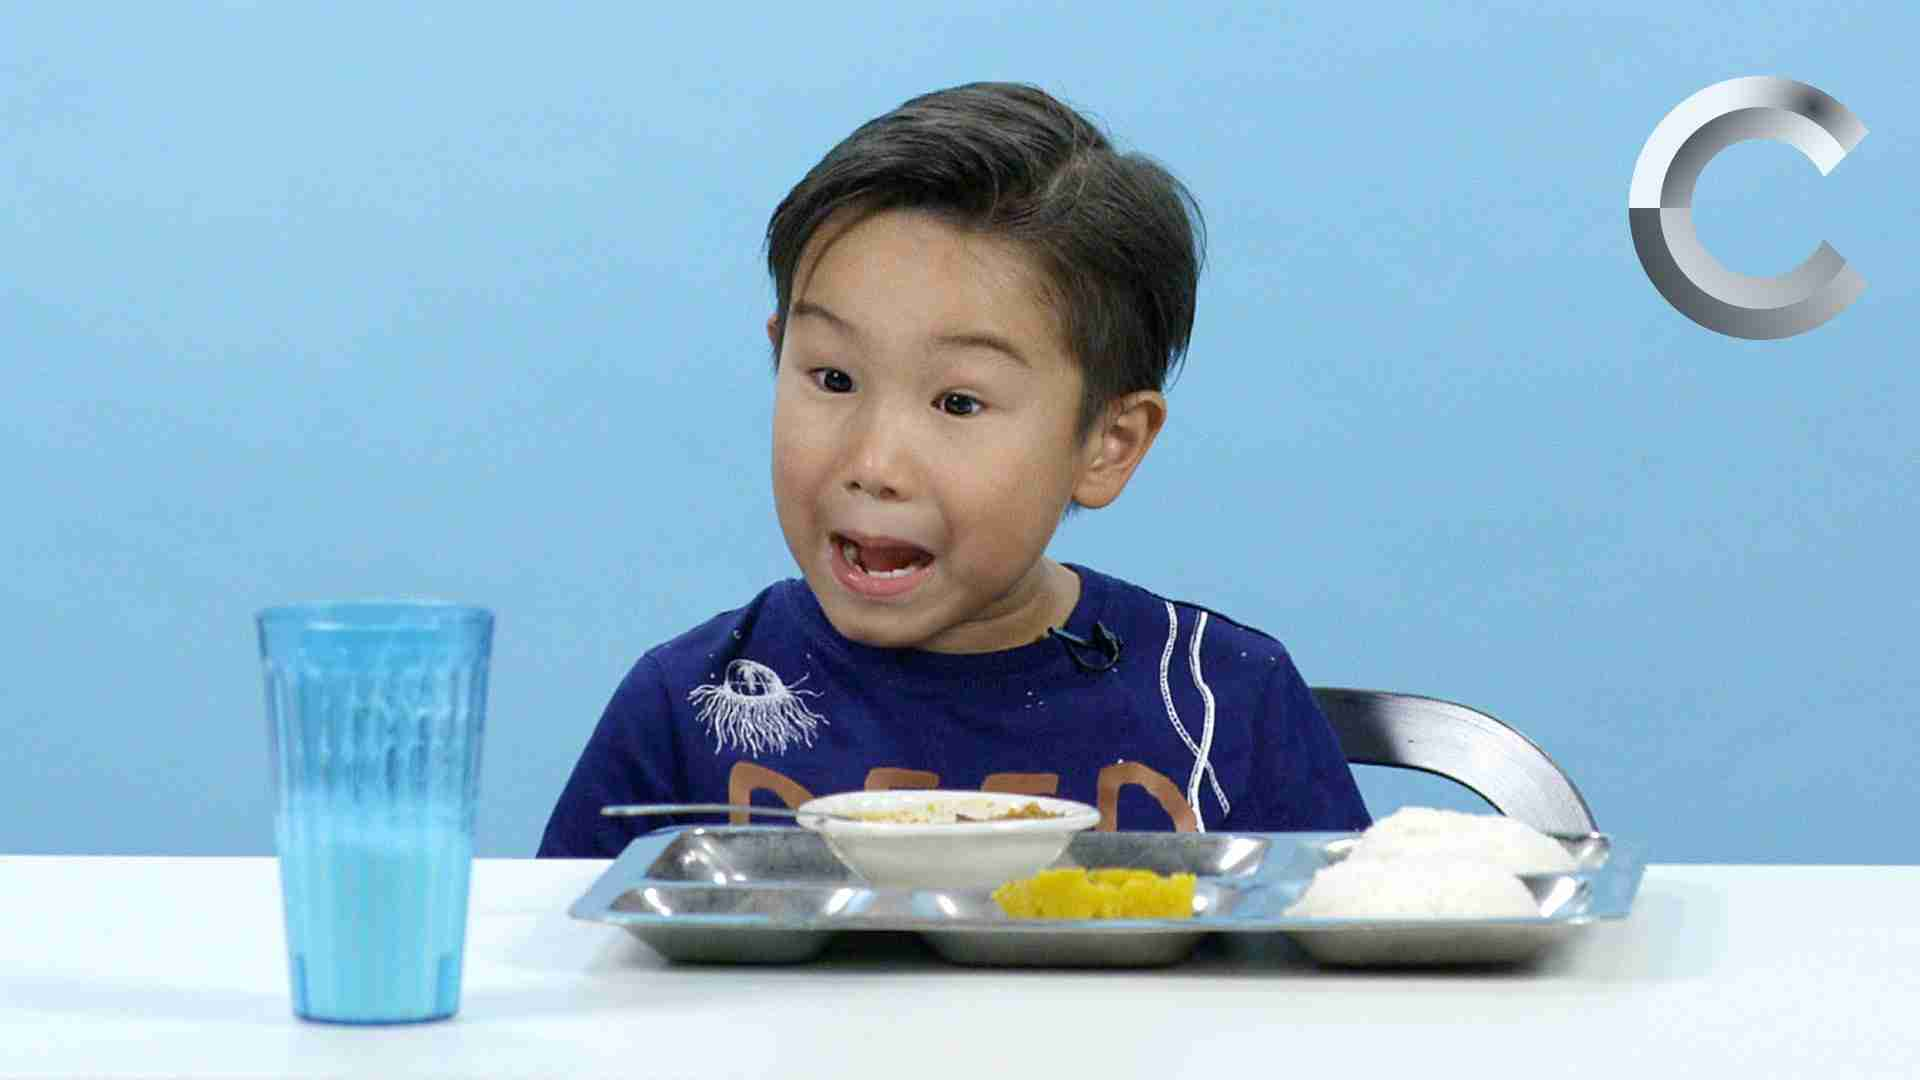 American Kids Try School Lunches from Around the World   Ep 2 - YouTube